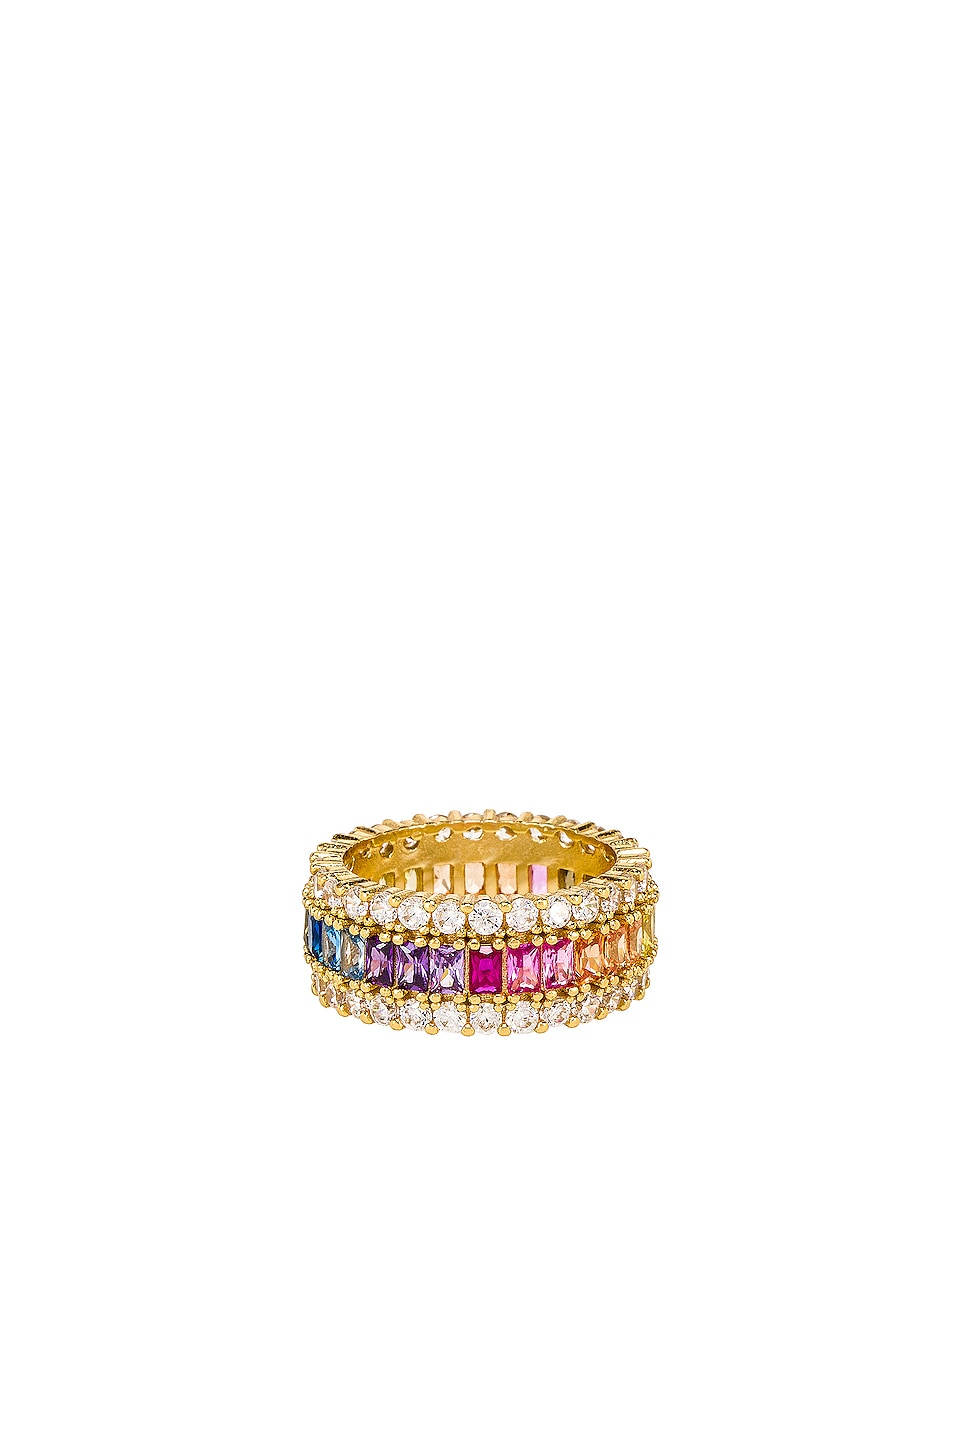 The M Jewelers NY Three Row Rainbow Ring in Multi